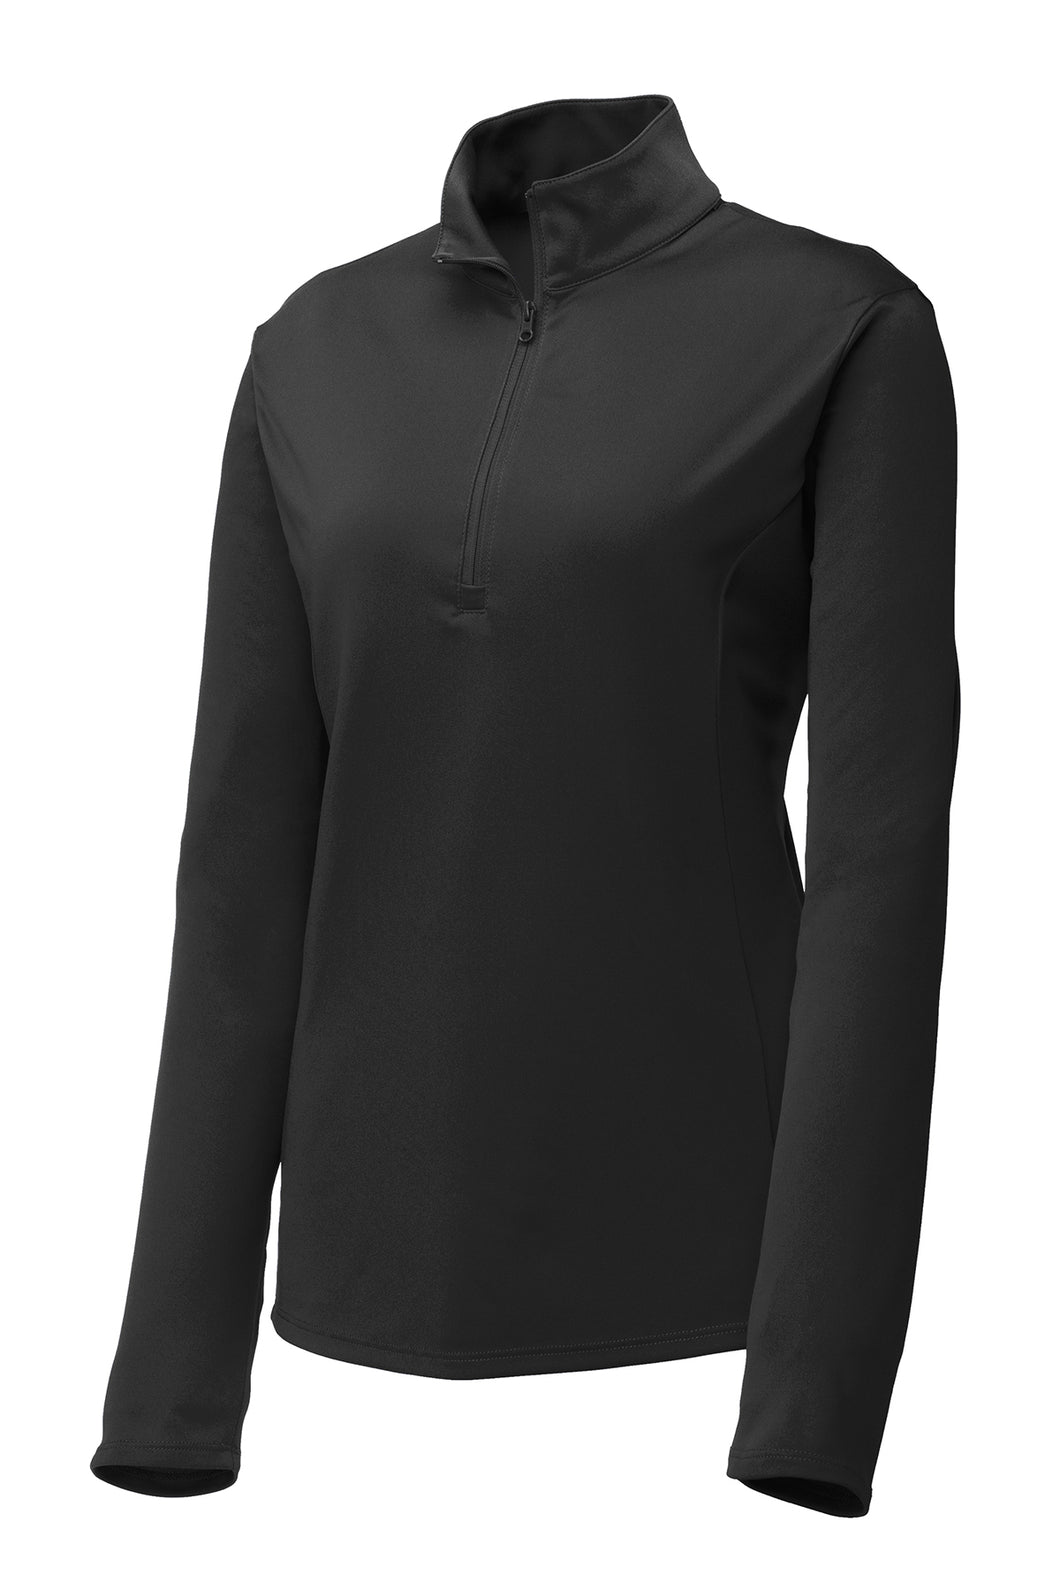 Ladies Quarter-zip Comfort Performance Pullover - Black